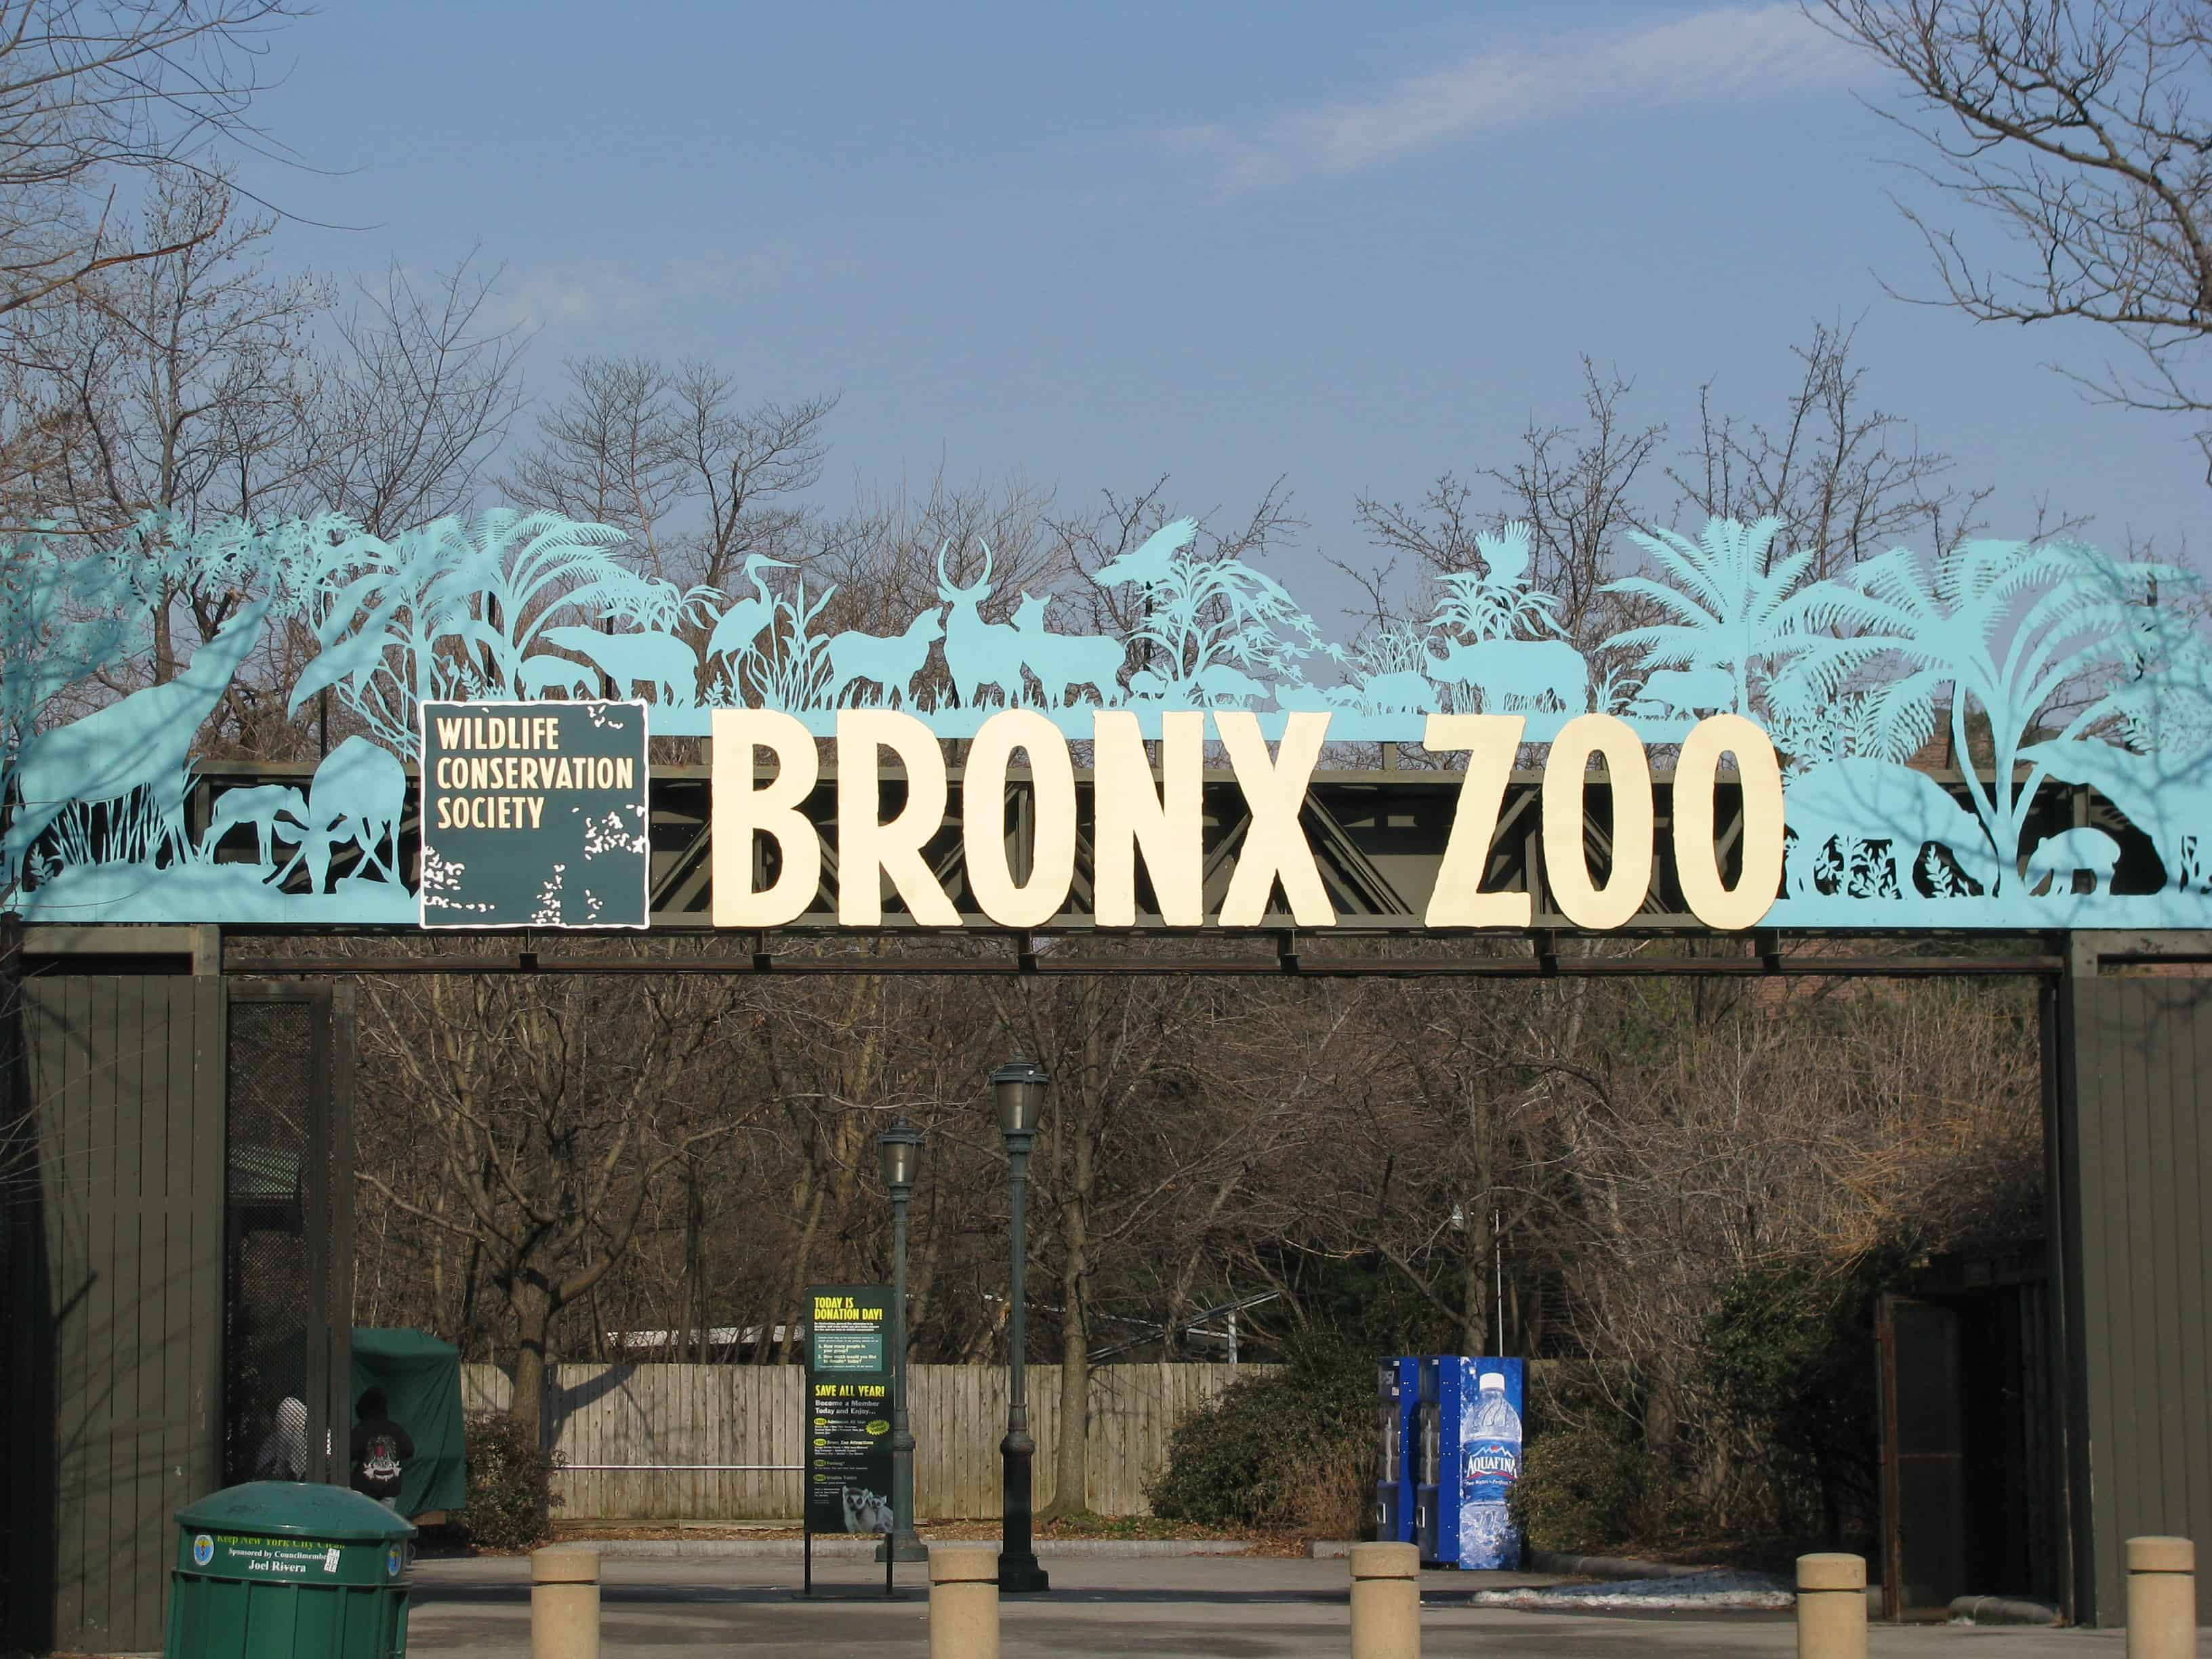 Bronx Zoo, New York - Best Rated Zoos in the World